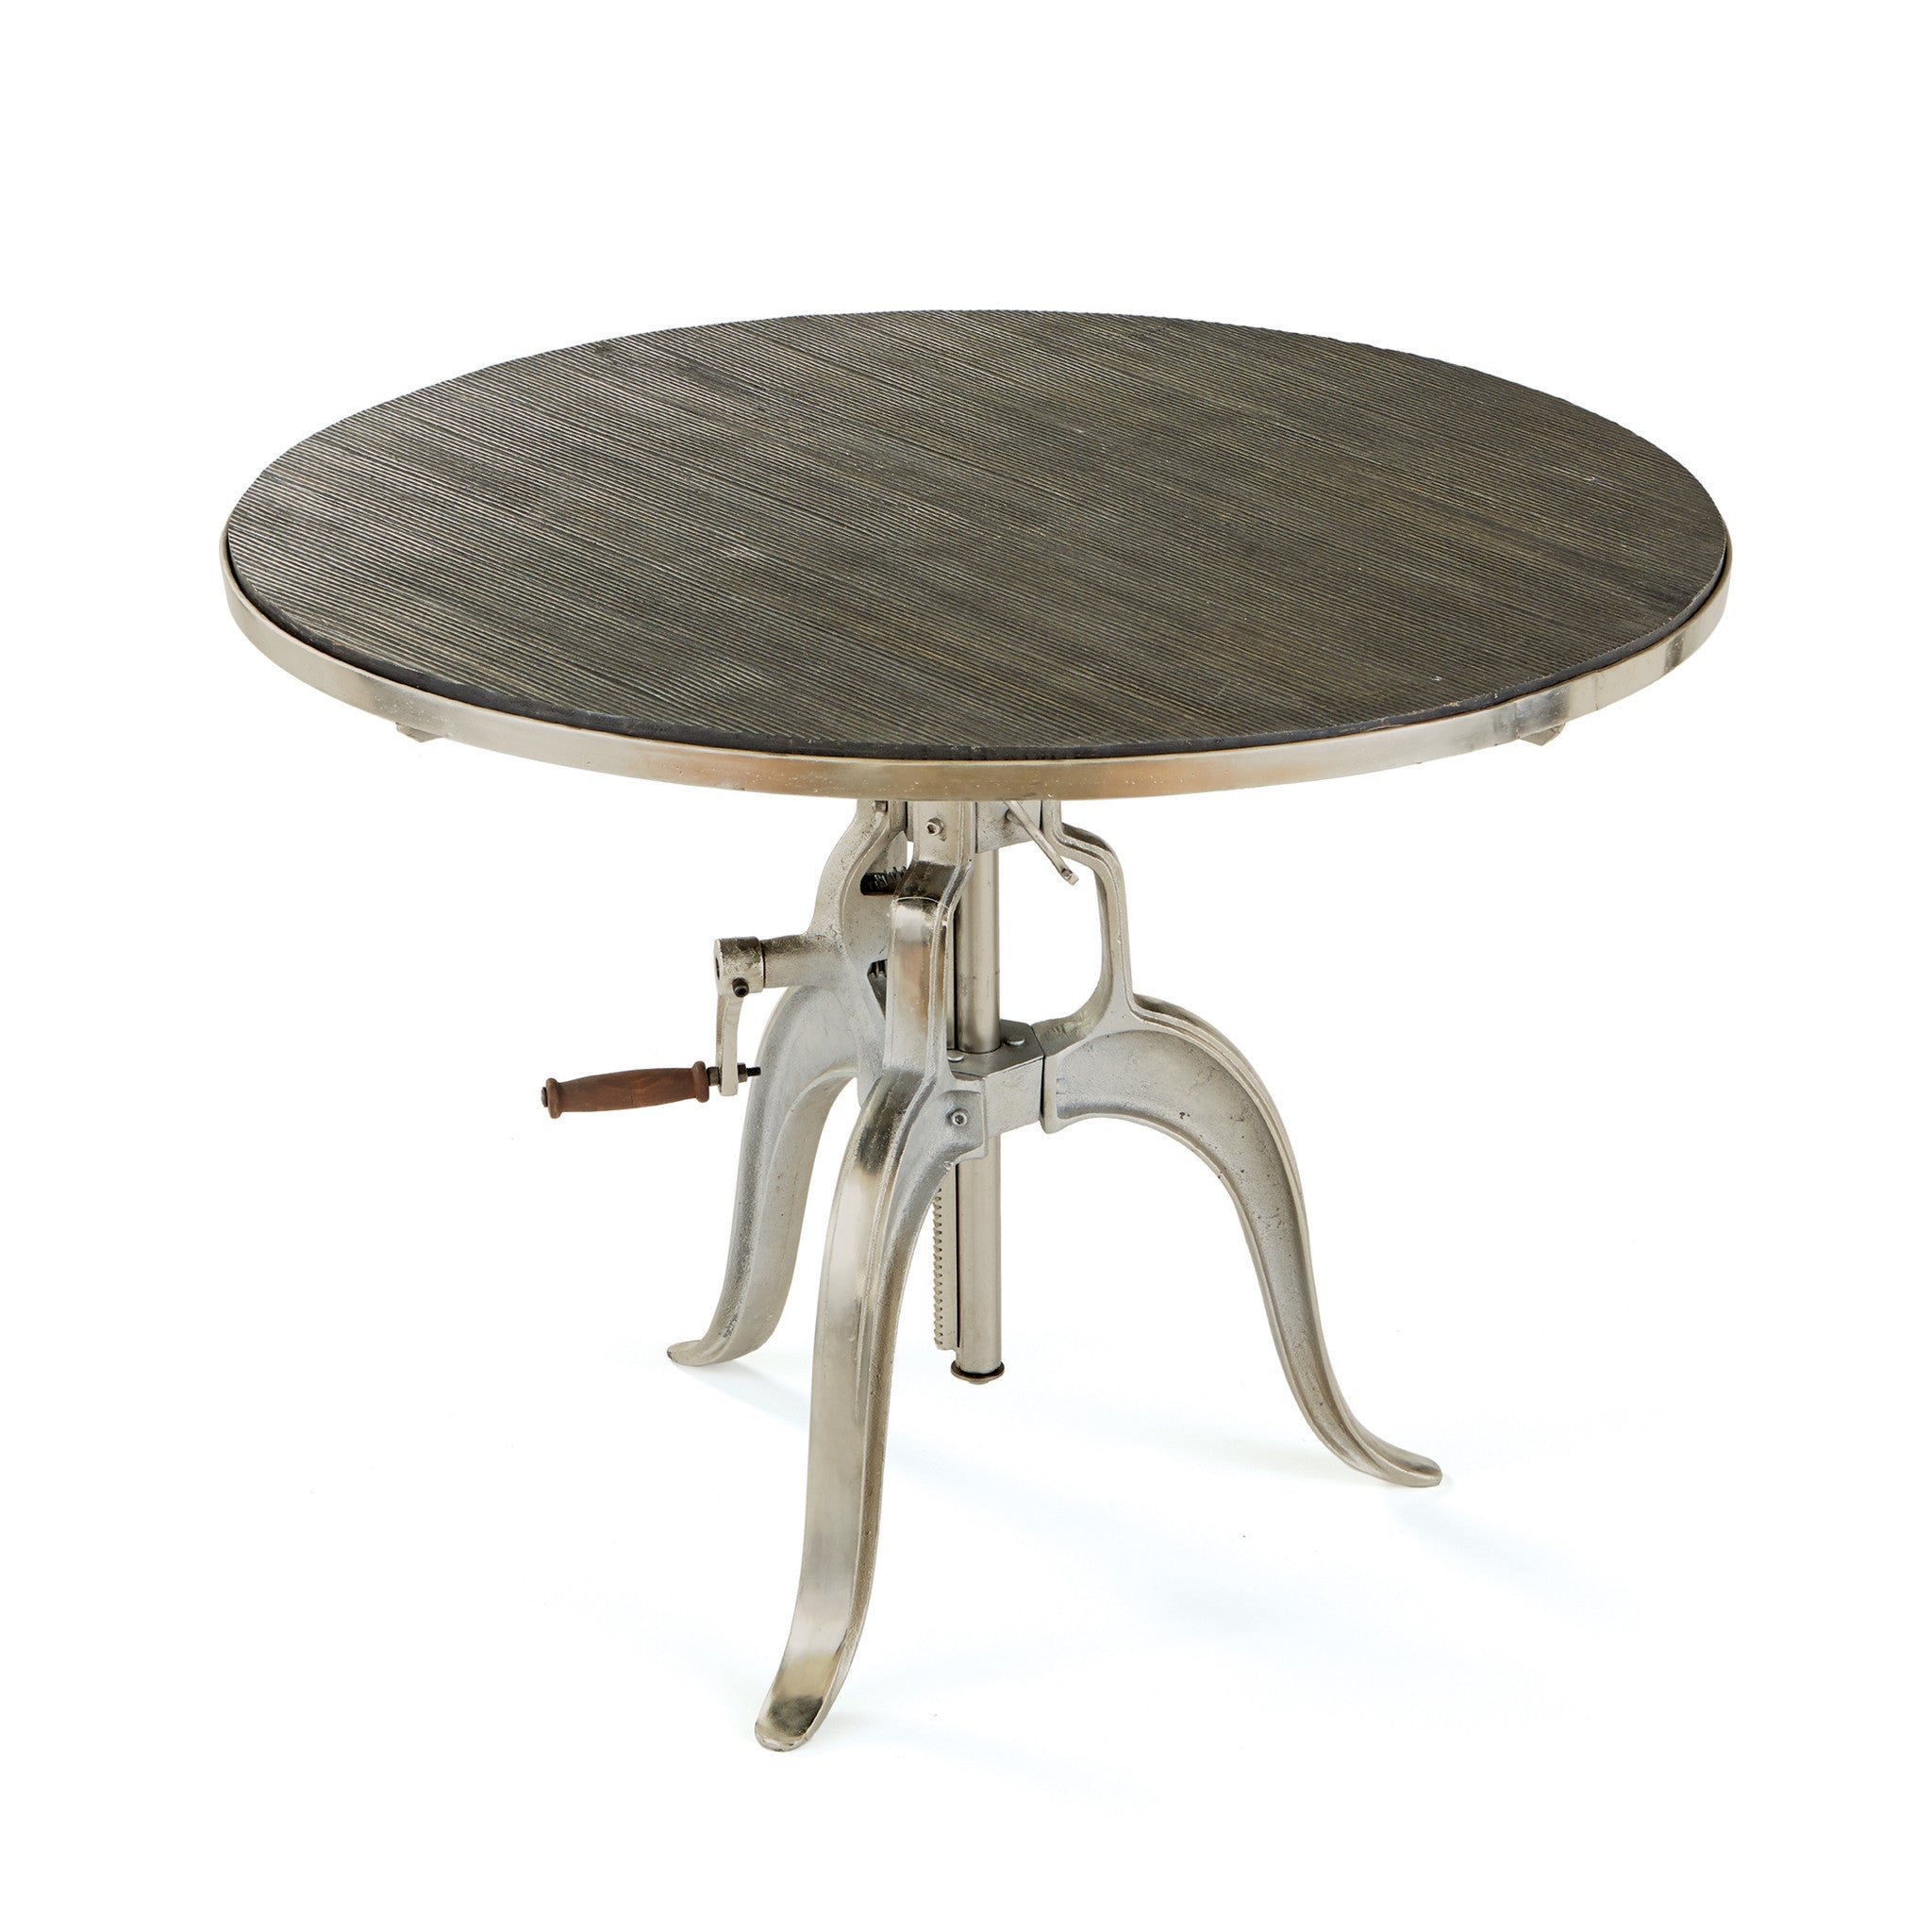 Hawley Adjustable Round Dining Table With Mango Wood Top On Nickel Base Dining  Tables